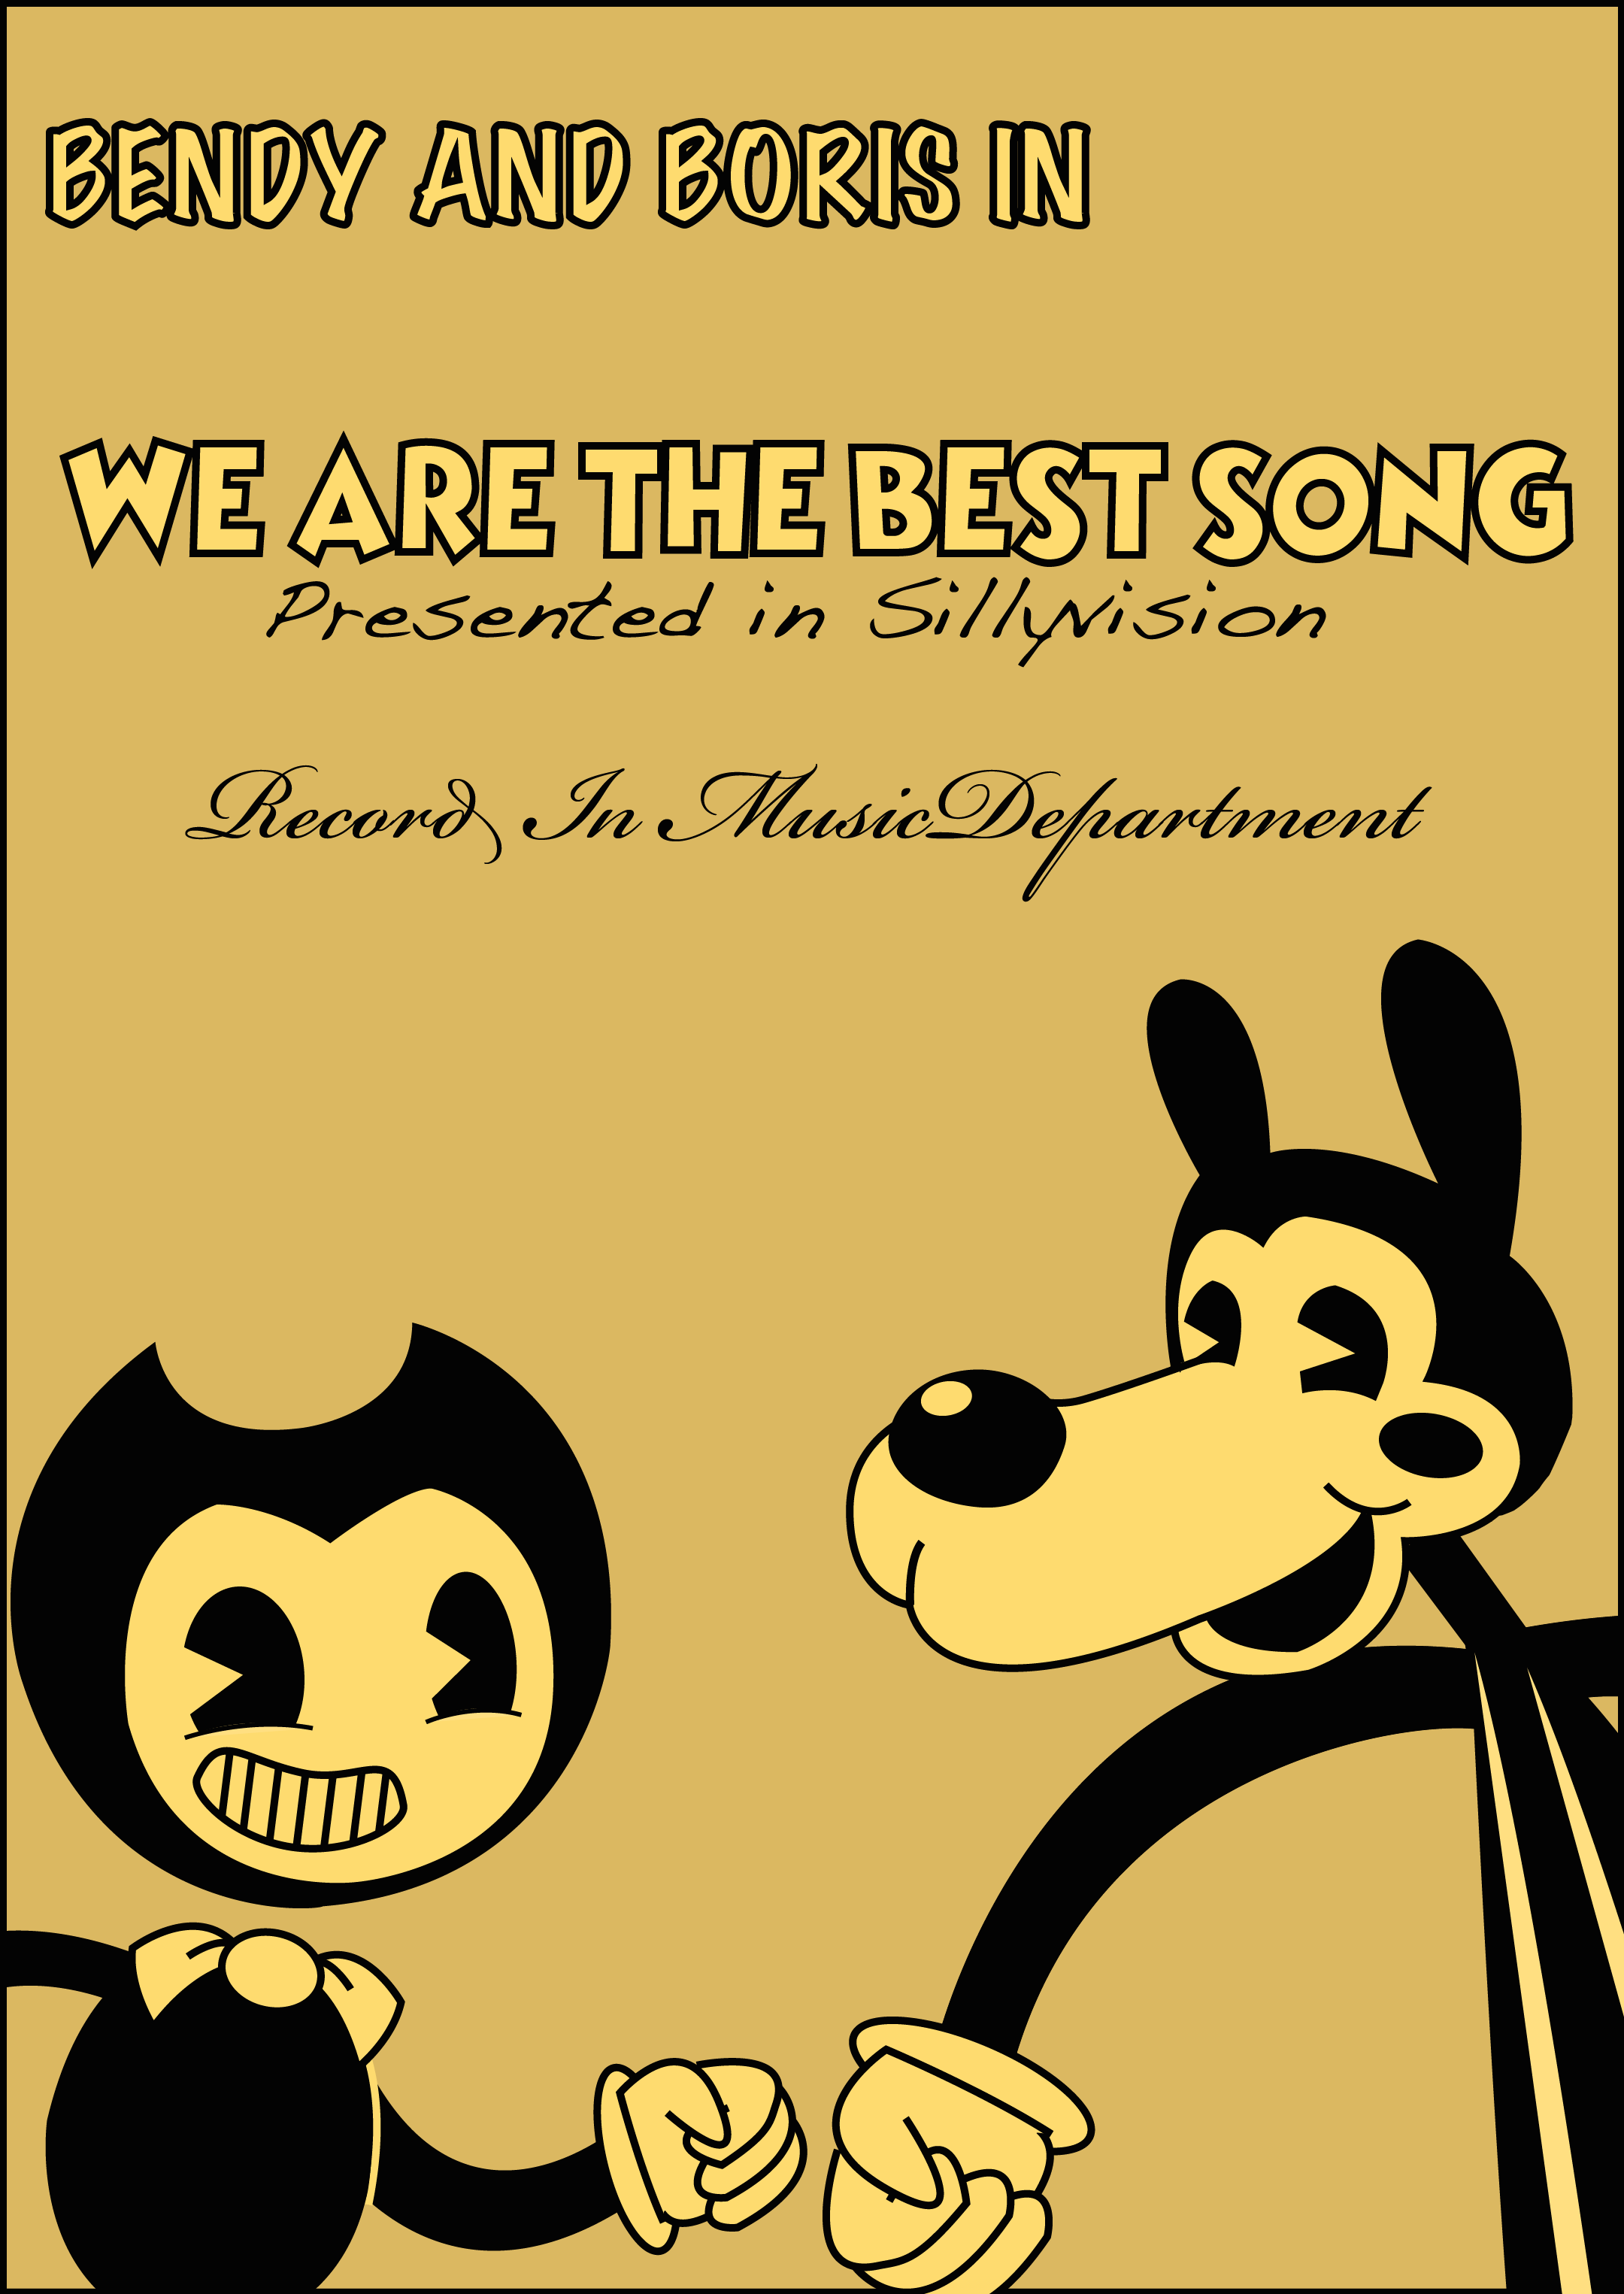 bendy and boris in we are the best song by Rui0730